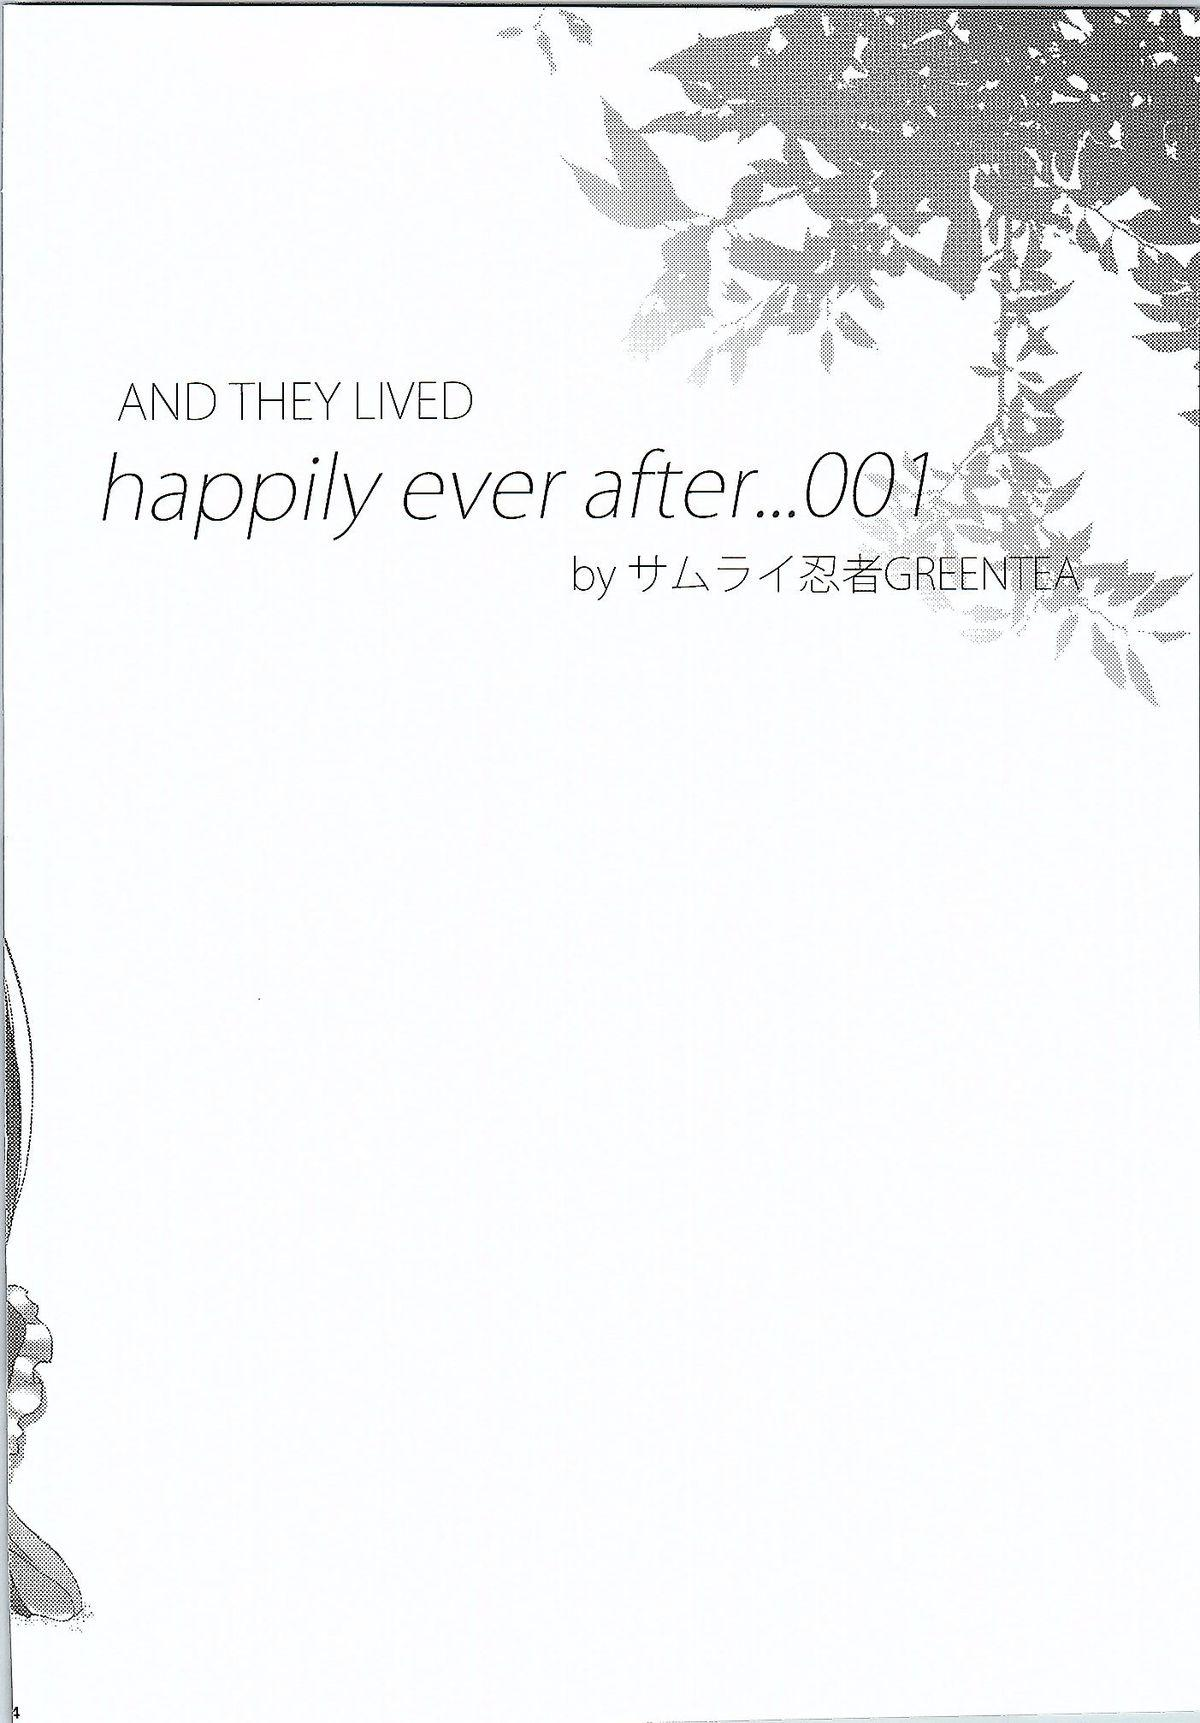 AND THEY LIVED happily ever after...001 2